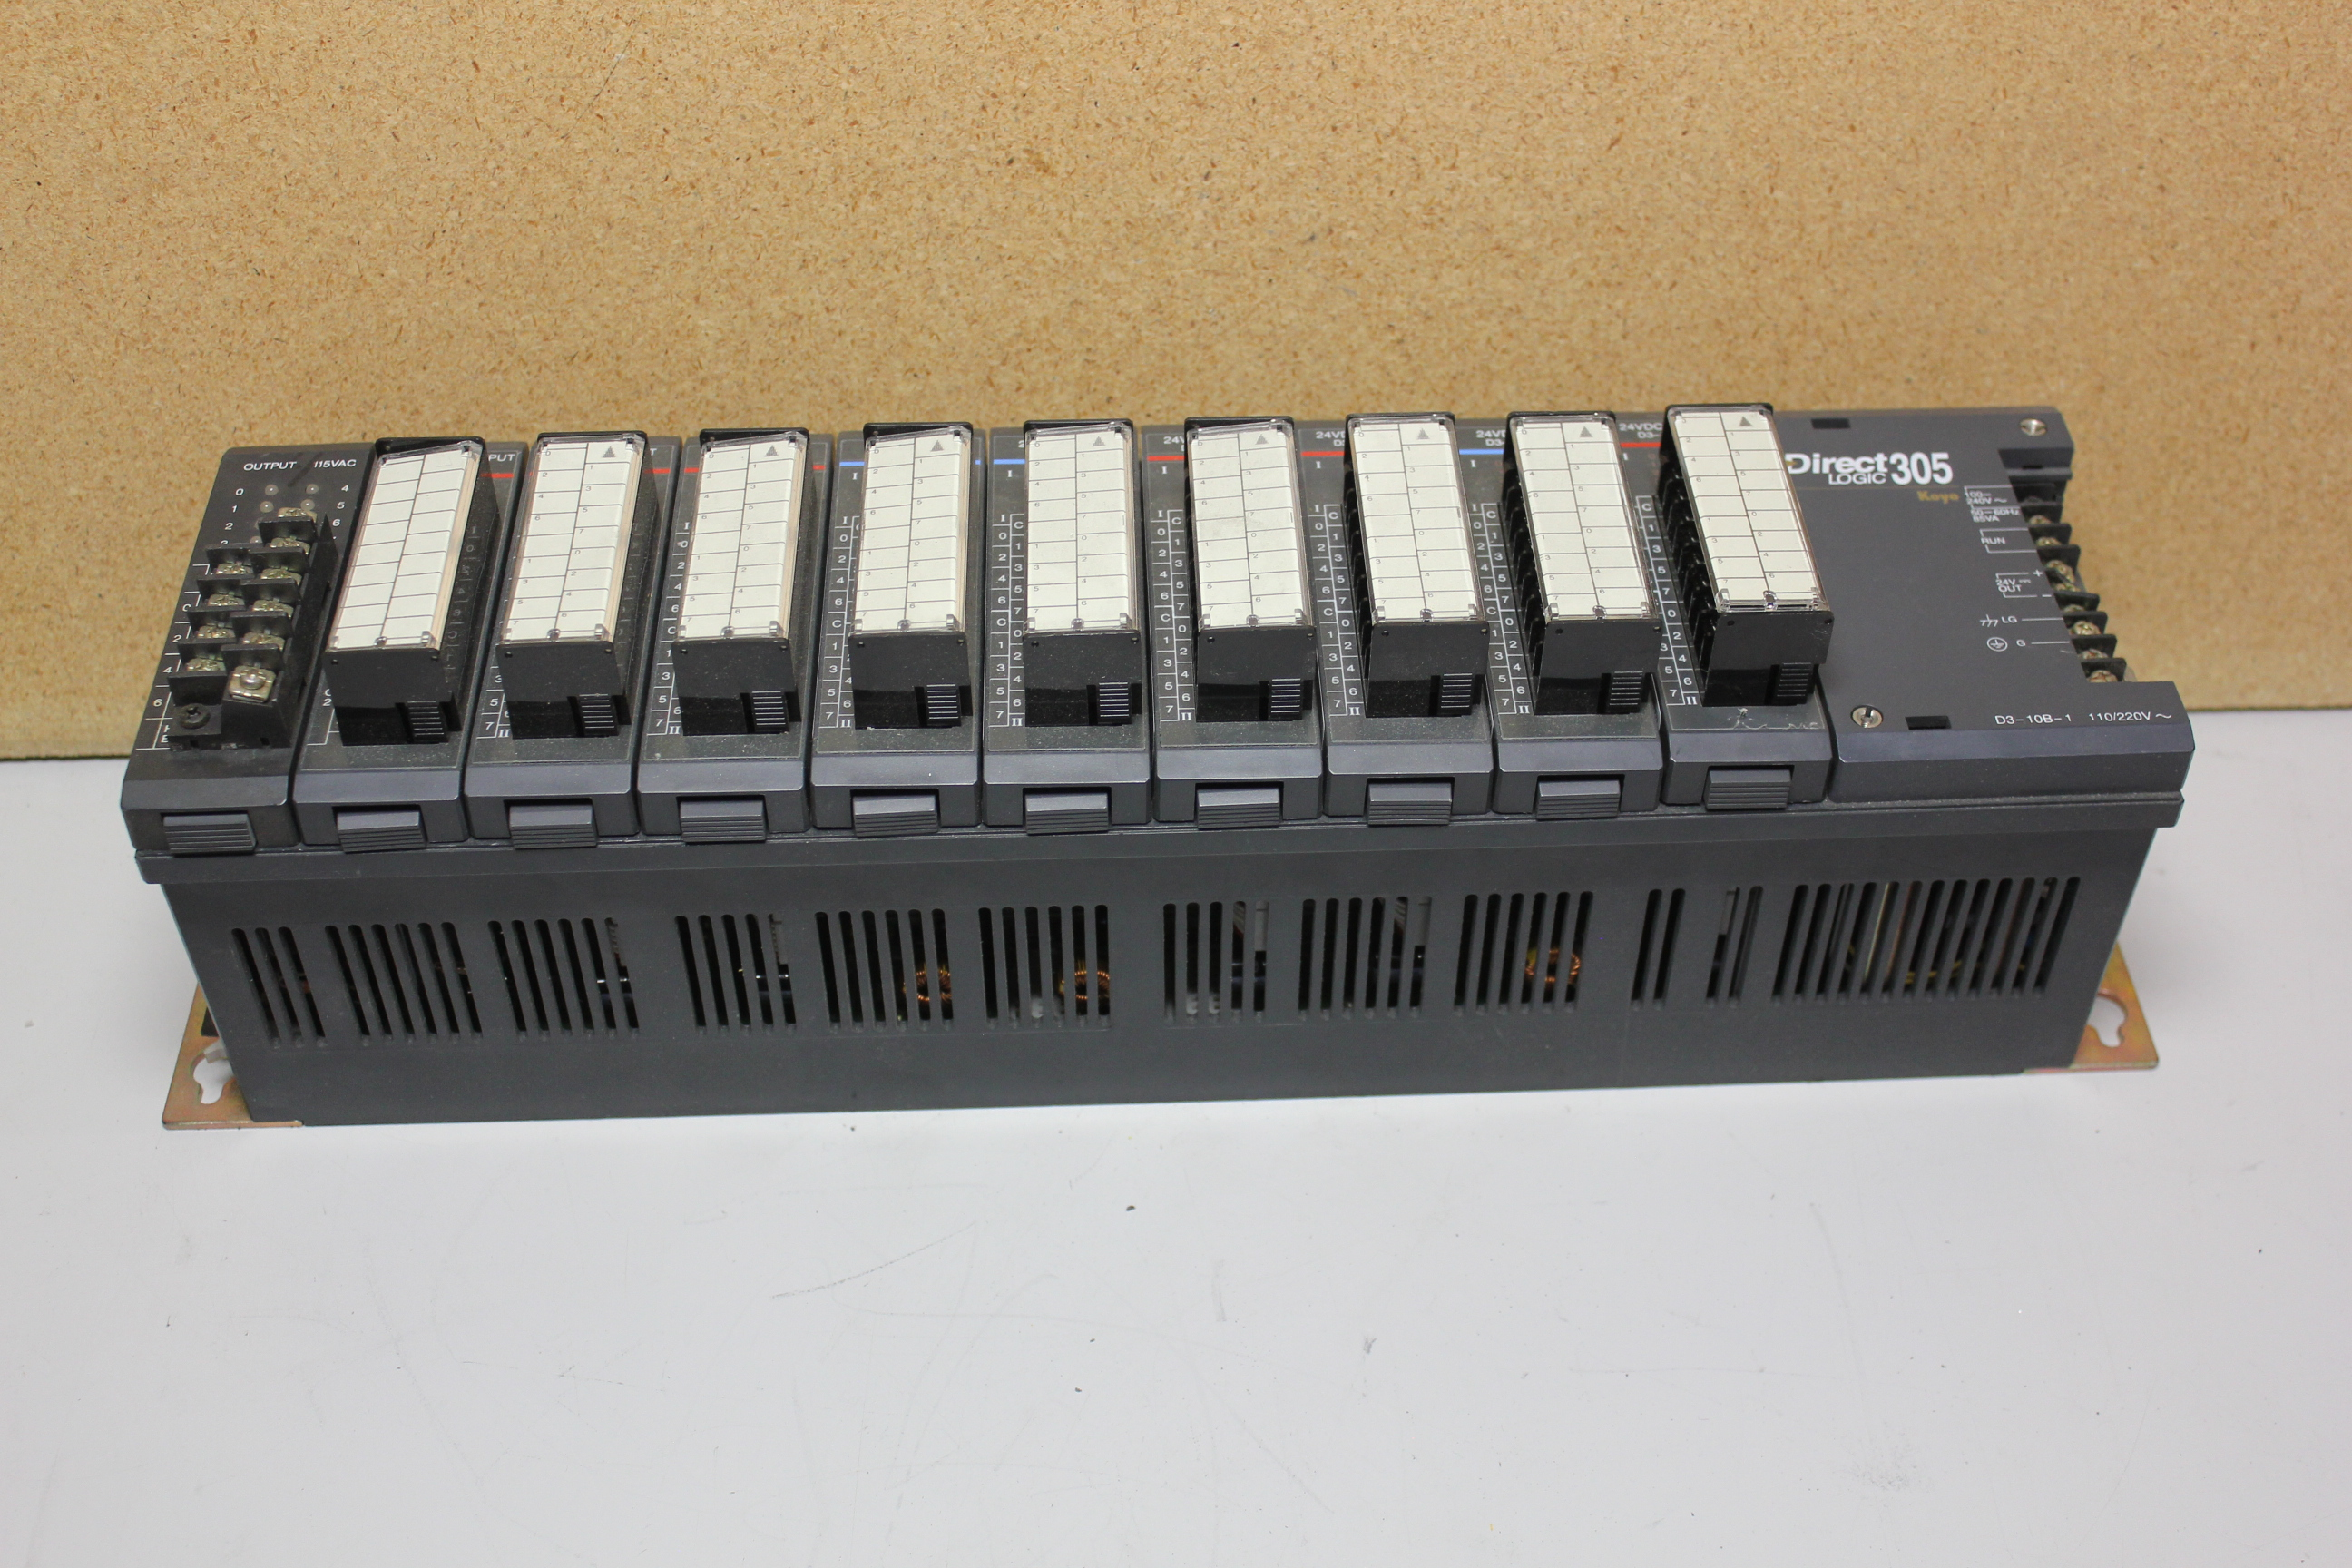 KOYO DIRECT LOGIC 305 PLC CHASSIS WITH 10 MODULES